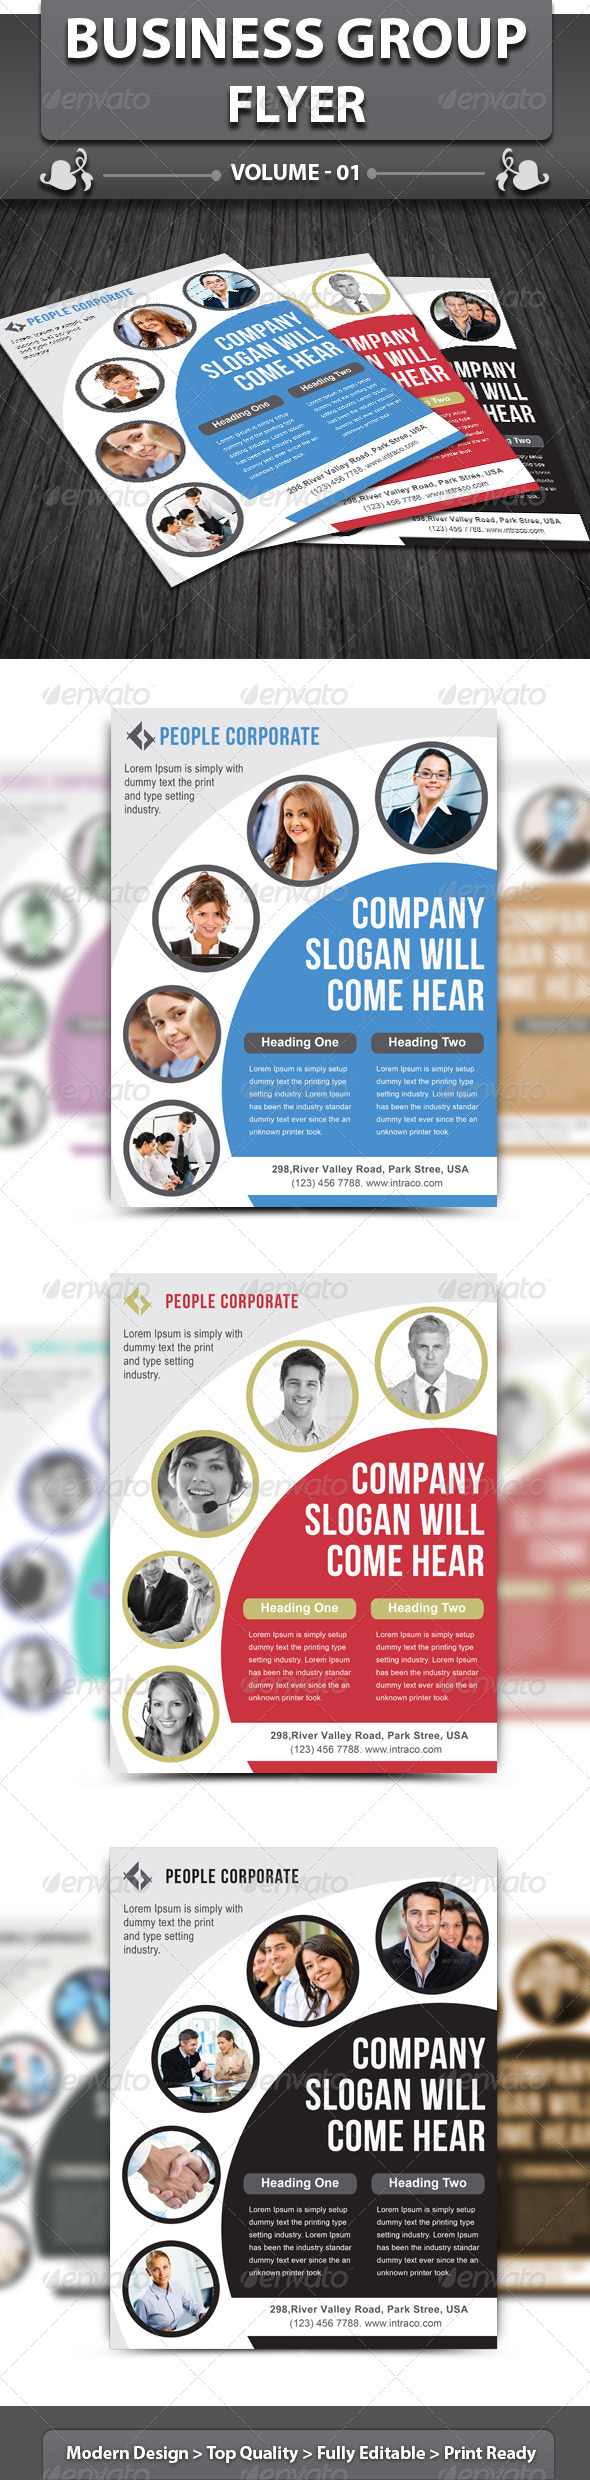 Corporate Business Flyer | Volume 4 - Corporate Flyers